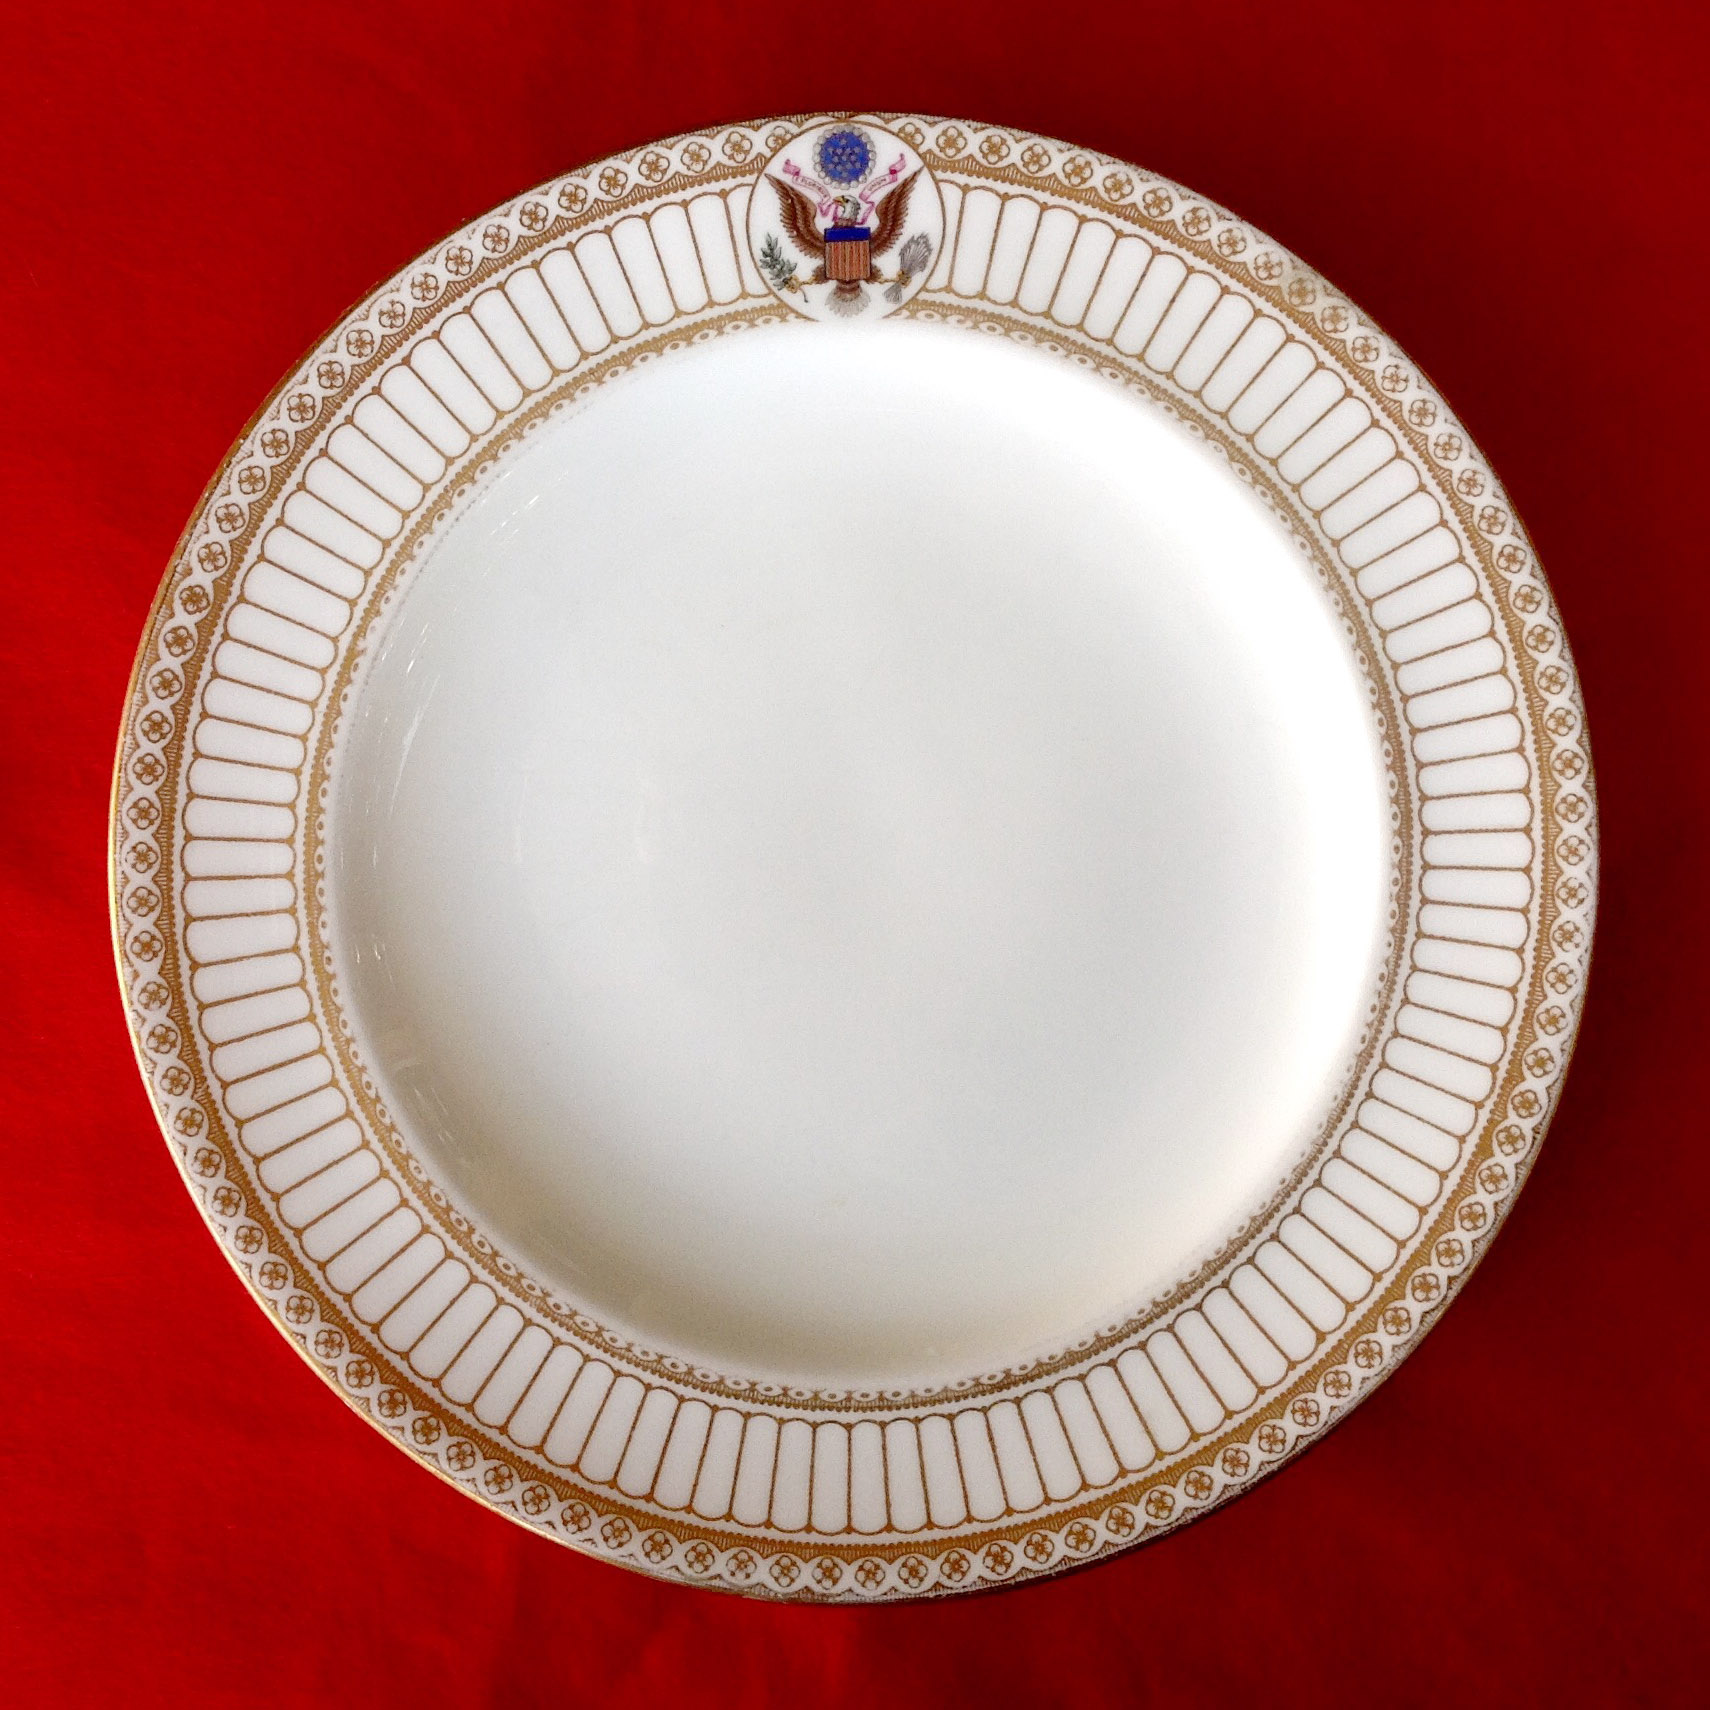 A fish plate from Theodore Roosevelt's White House china